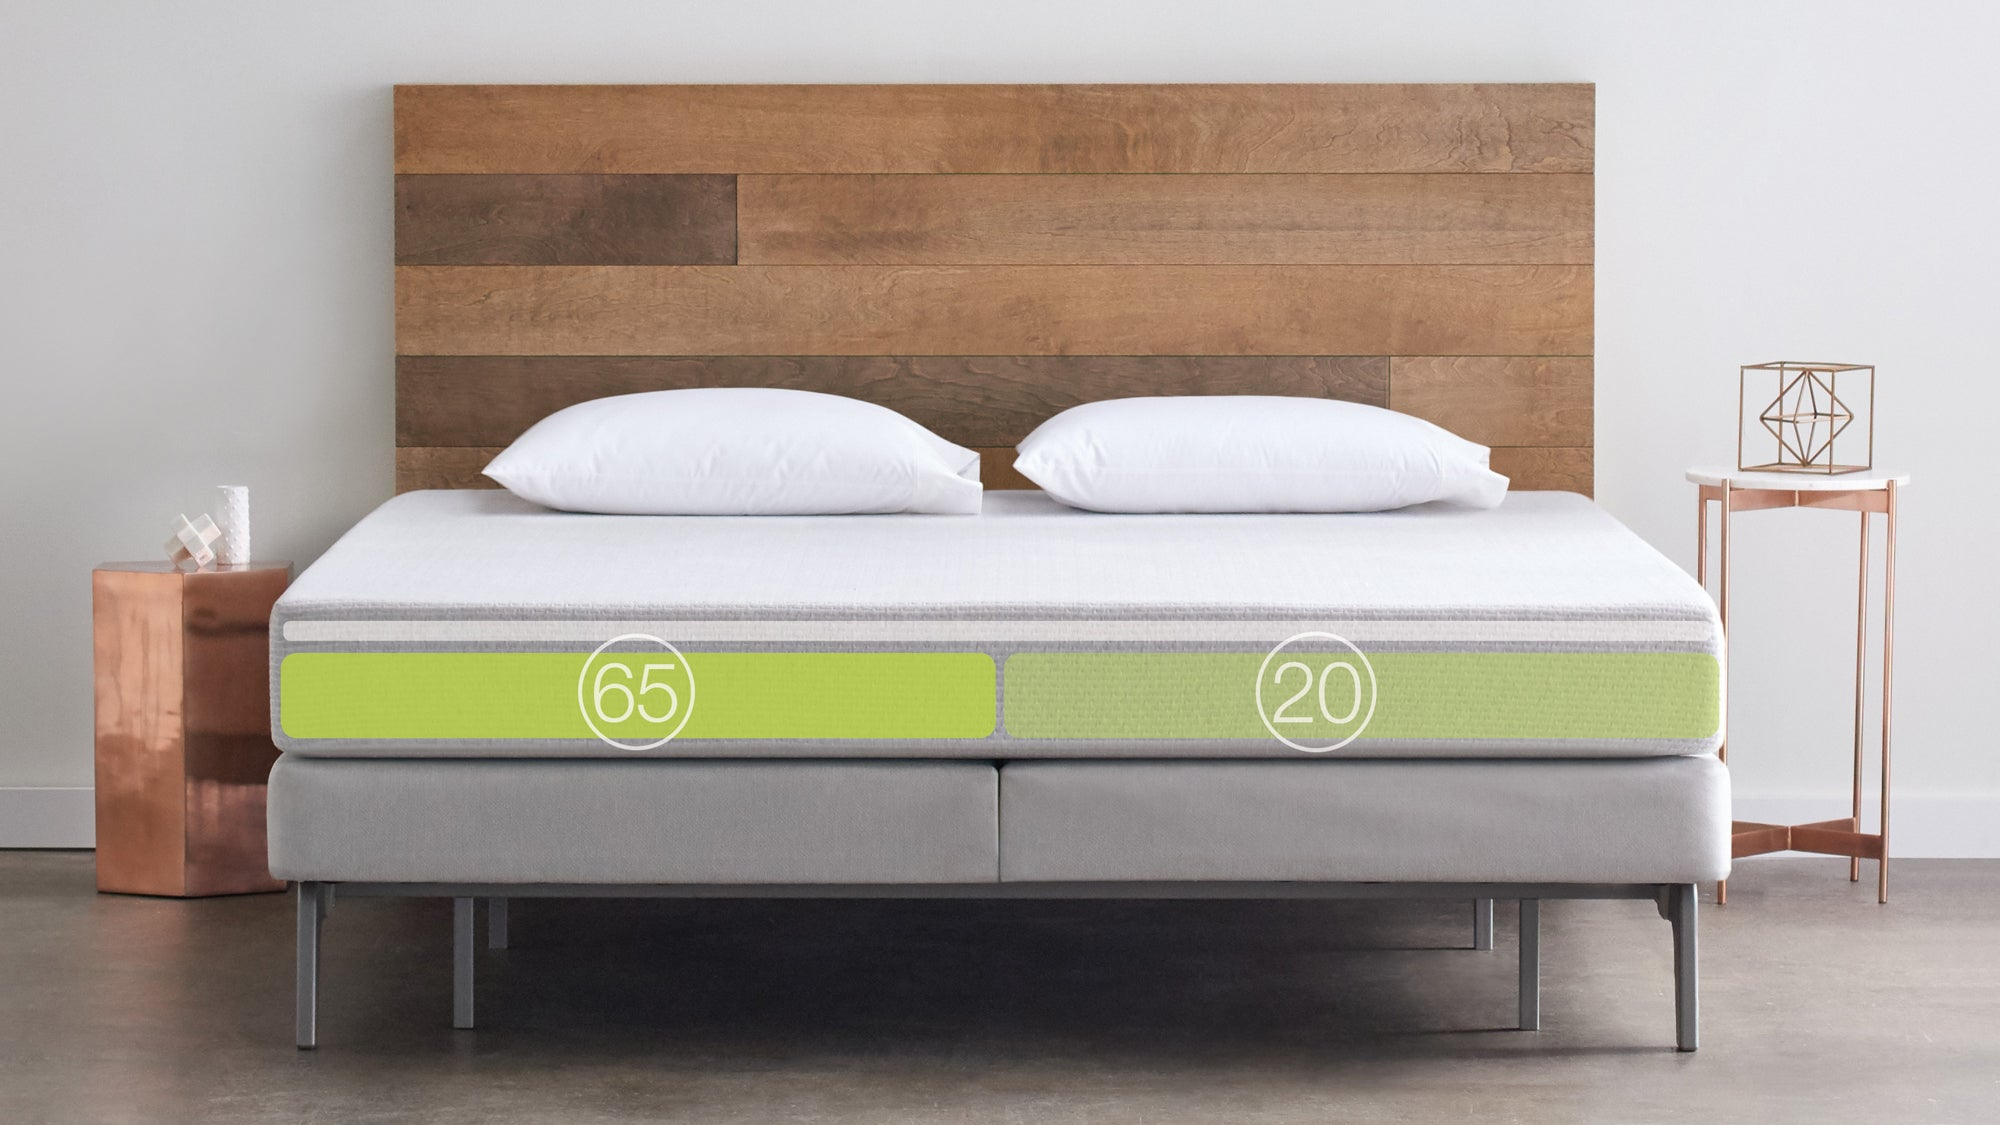 Sleep number 39 s new adjustable mattress ships in a tiny box for Sleep by number mattress